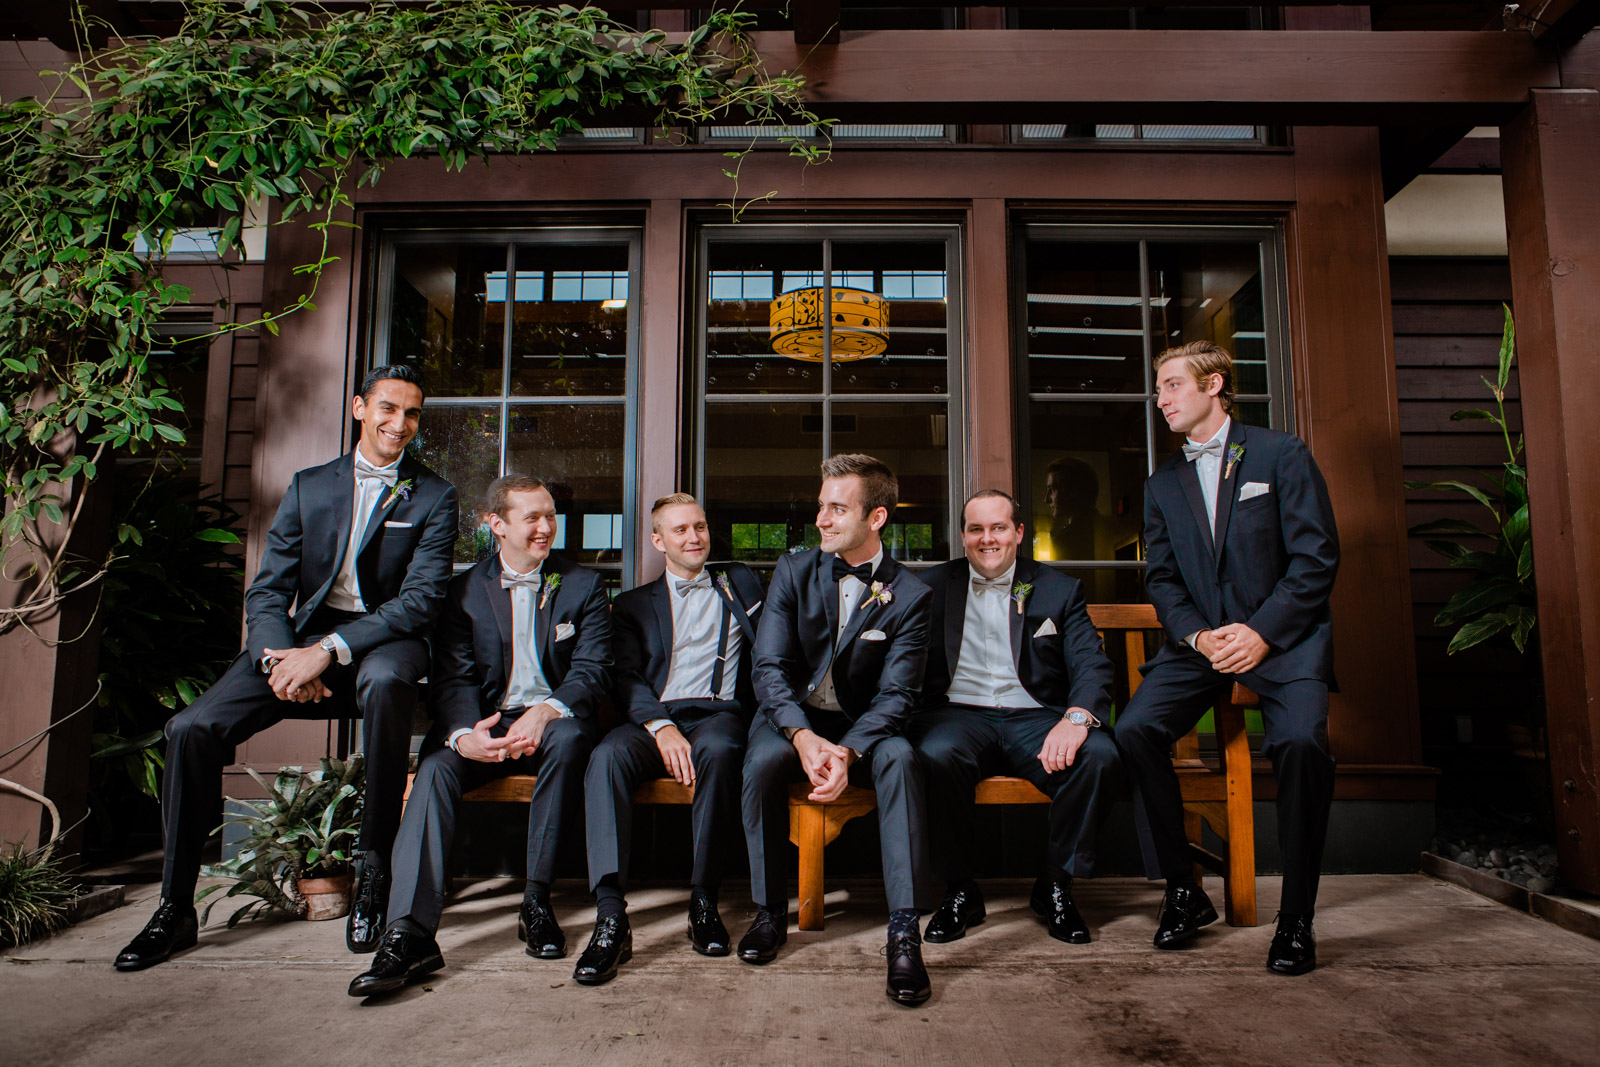 the groomsmen sit together looking poised